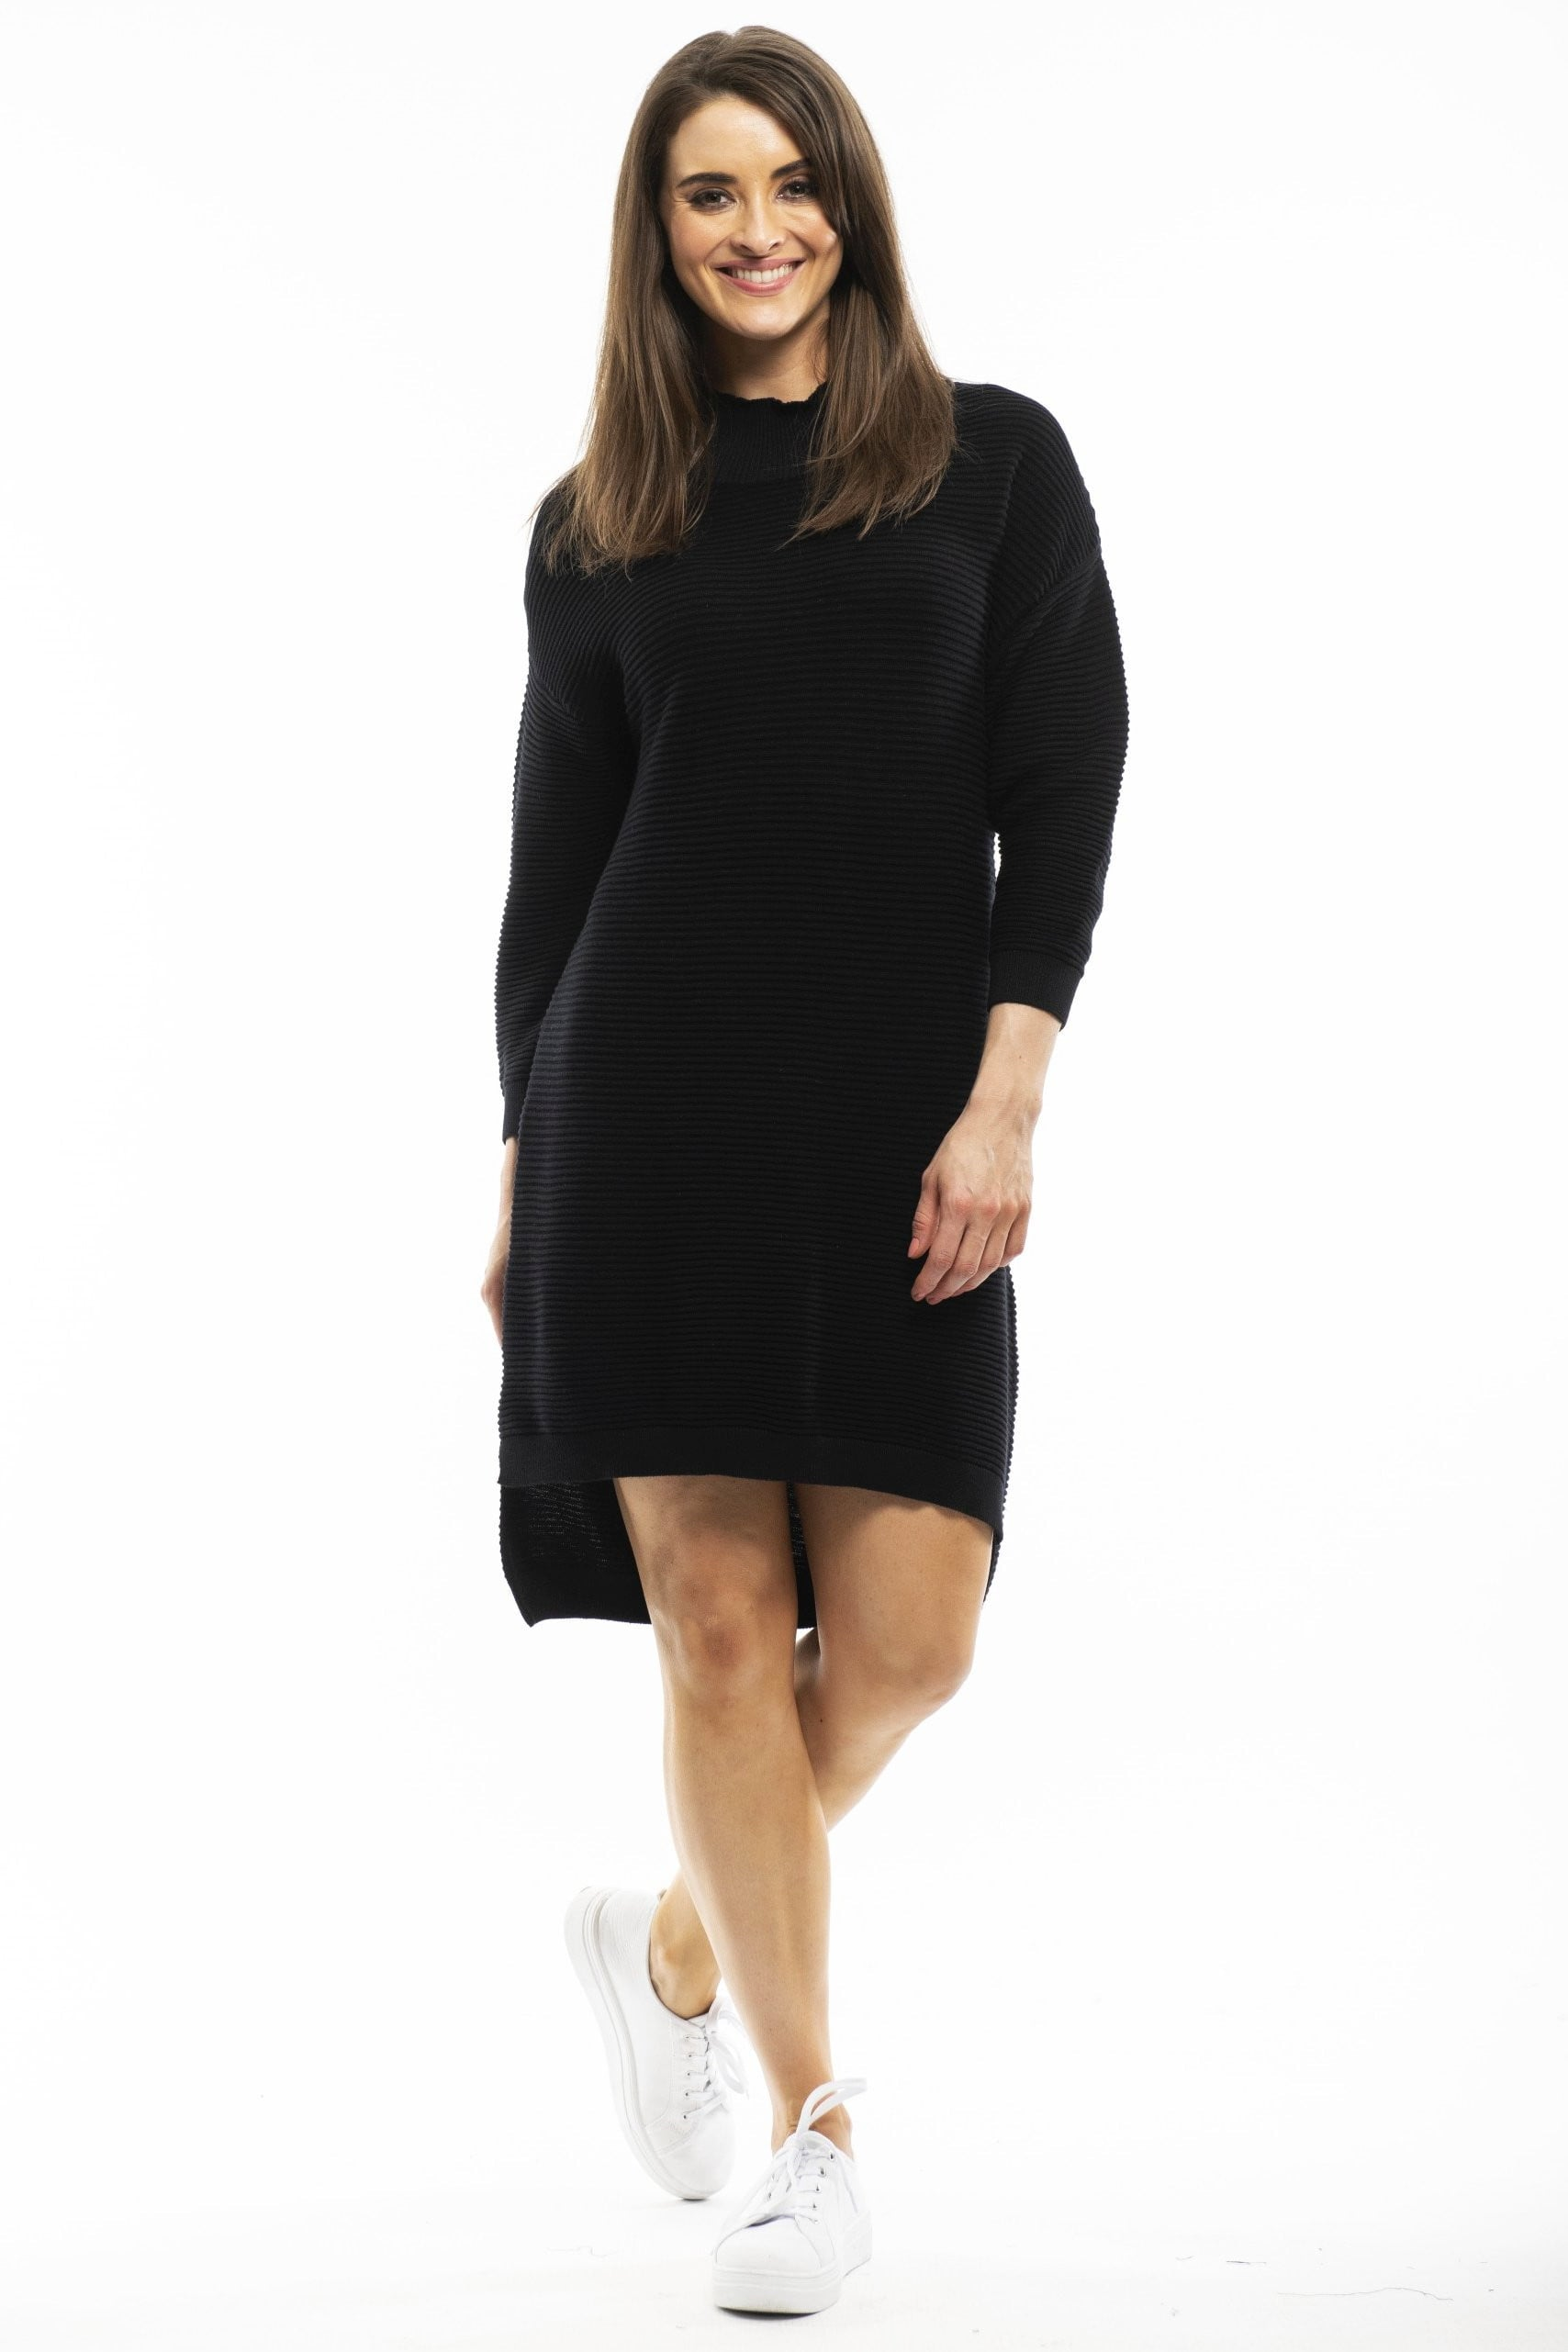 Black Ribbed Knit Tunic Dress By Orientique | I Love Tunics | Tunic Tops | Tunic | Tunic Dresses  | womens clothing online